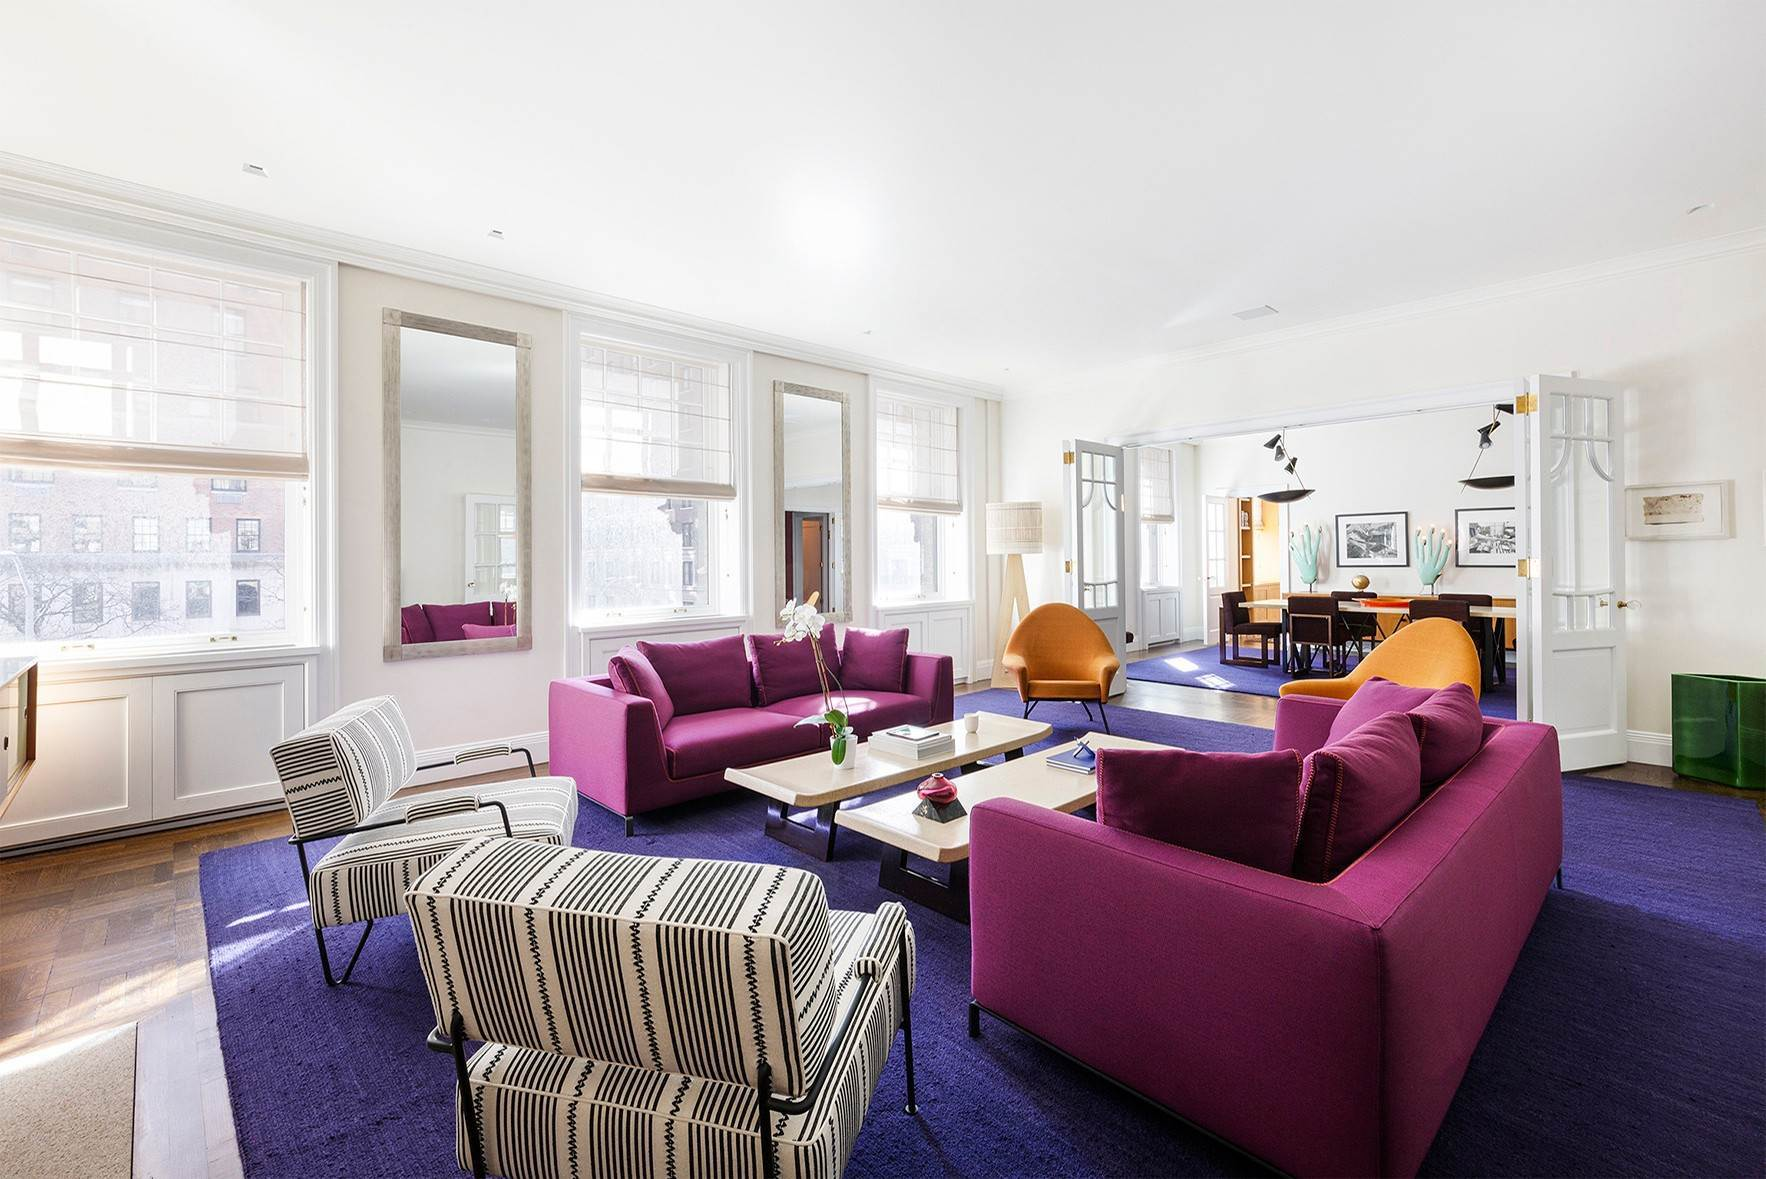 Co-op property for Sale at 1000 Park Avenue, 2A New York, New York,10028 United States